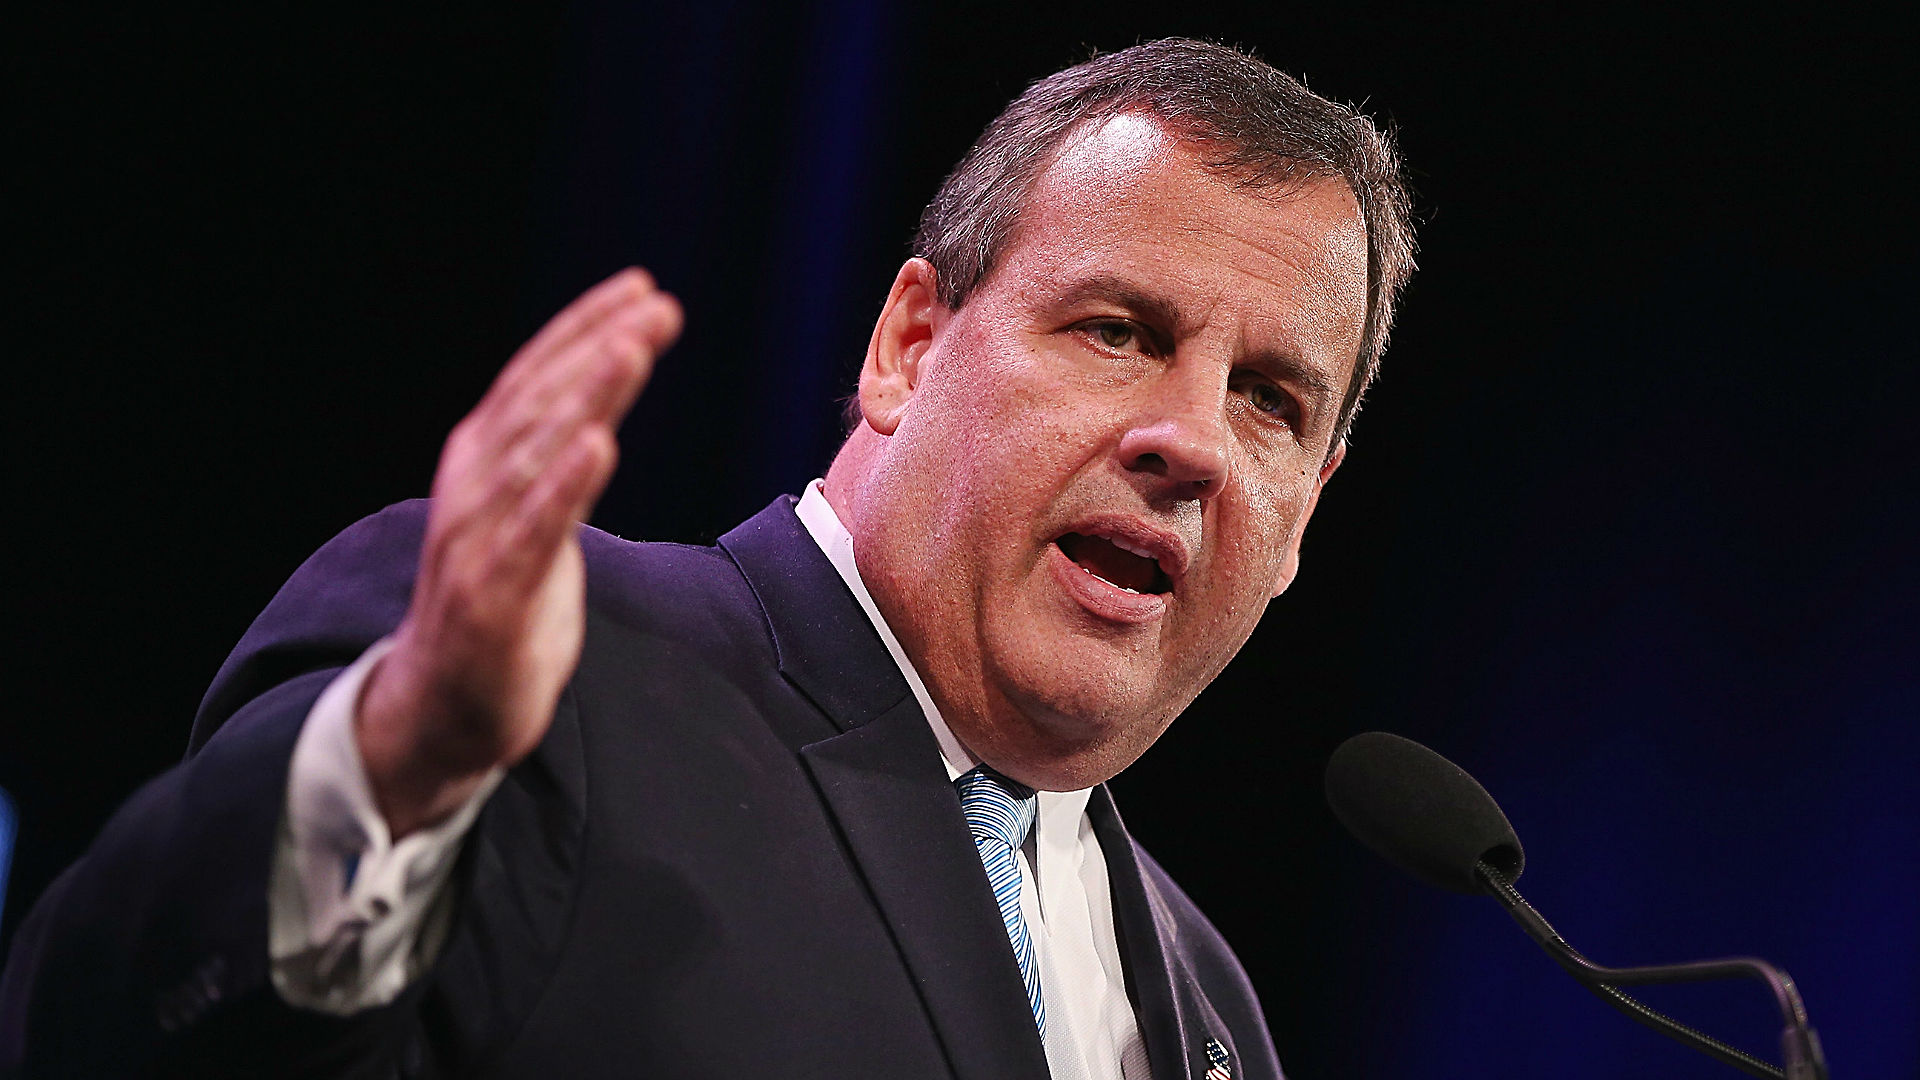 Odds to win 2016 U.S. presidential election – Chris Christie throws hat in ring